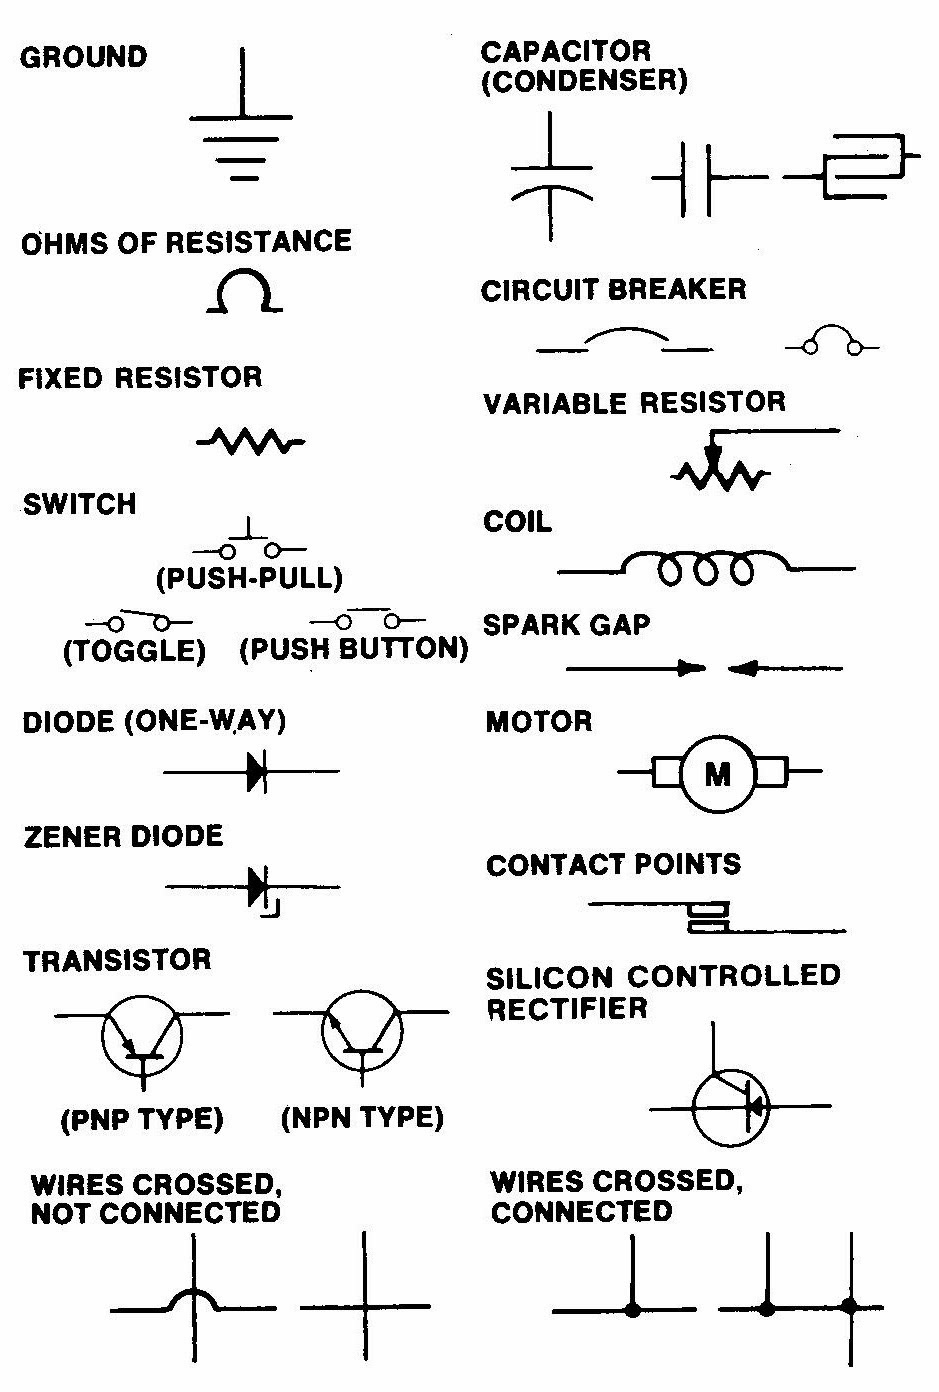 Common+Car+Electrical+Diagram+Symbols common wiring diagram symbols residential electrical wiring wiring diagram symbols chart at mifinder.co